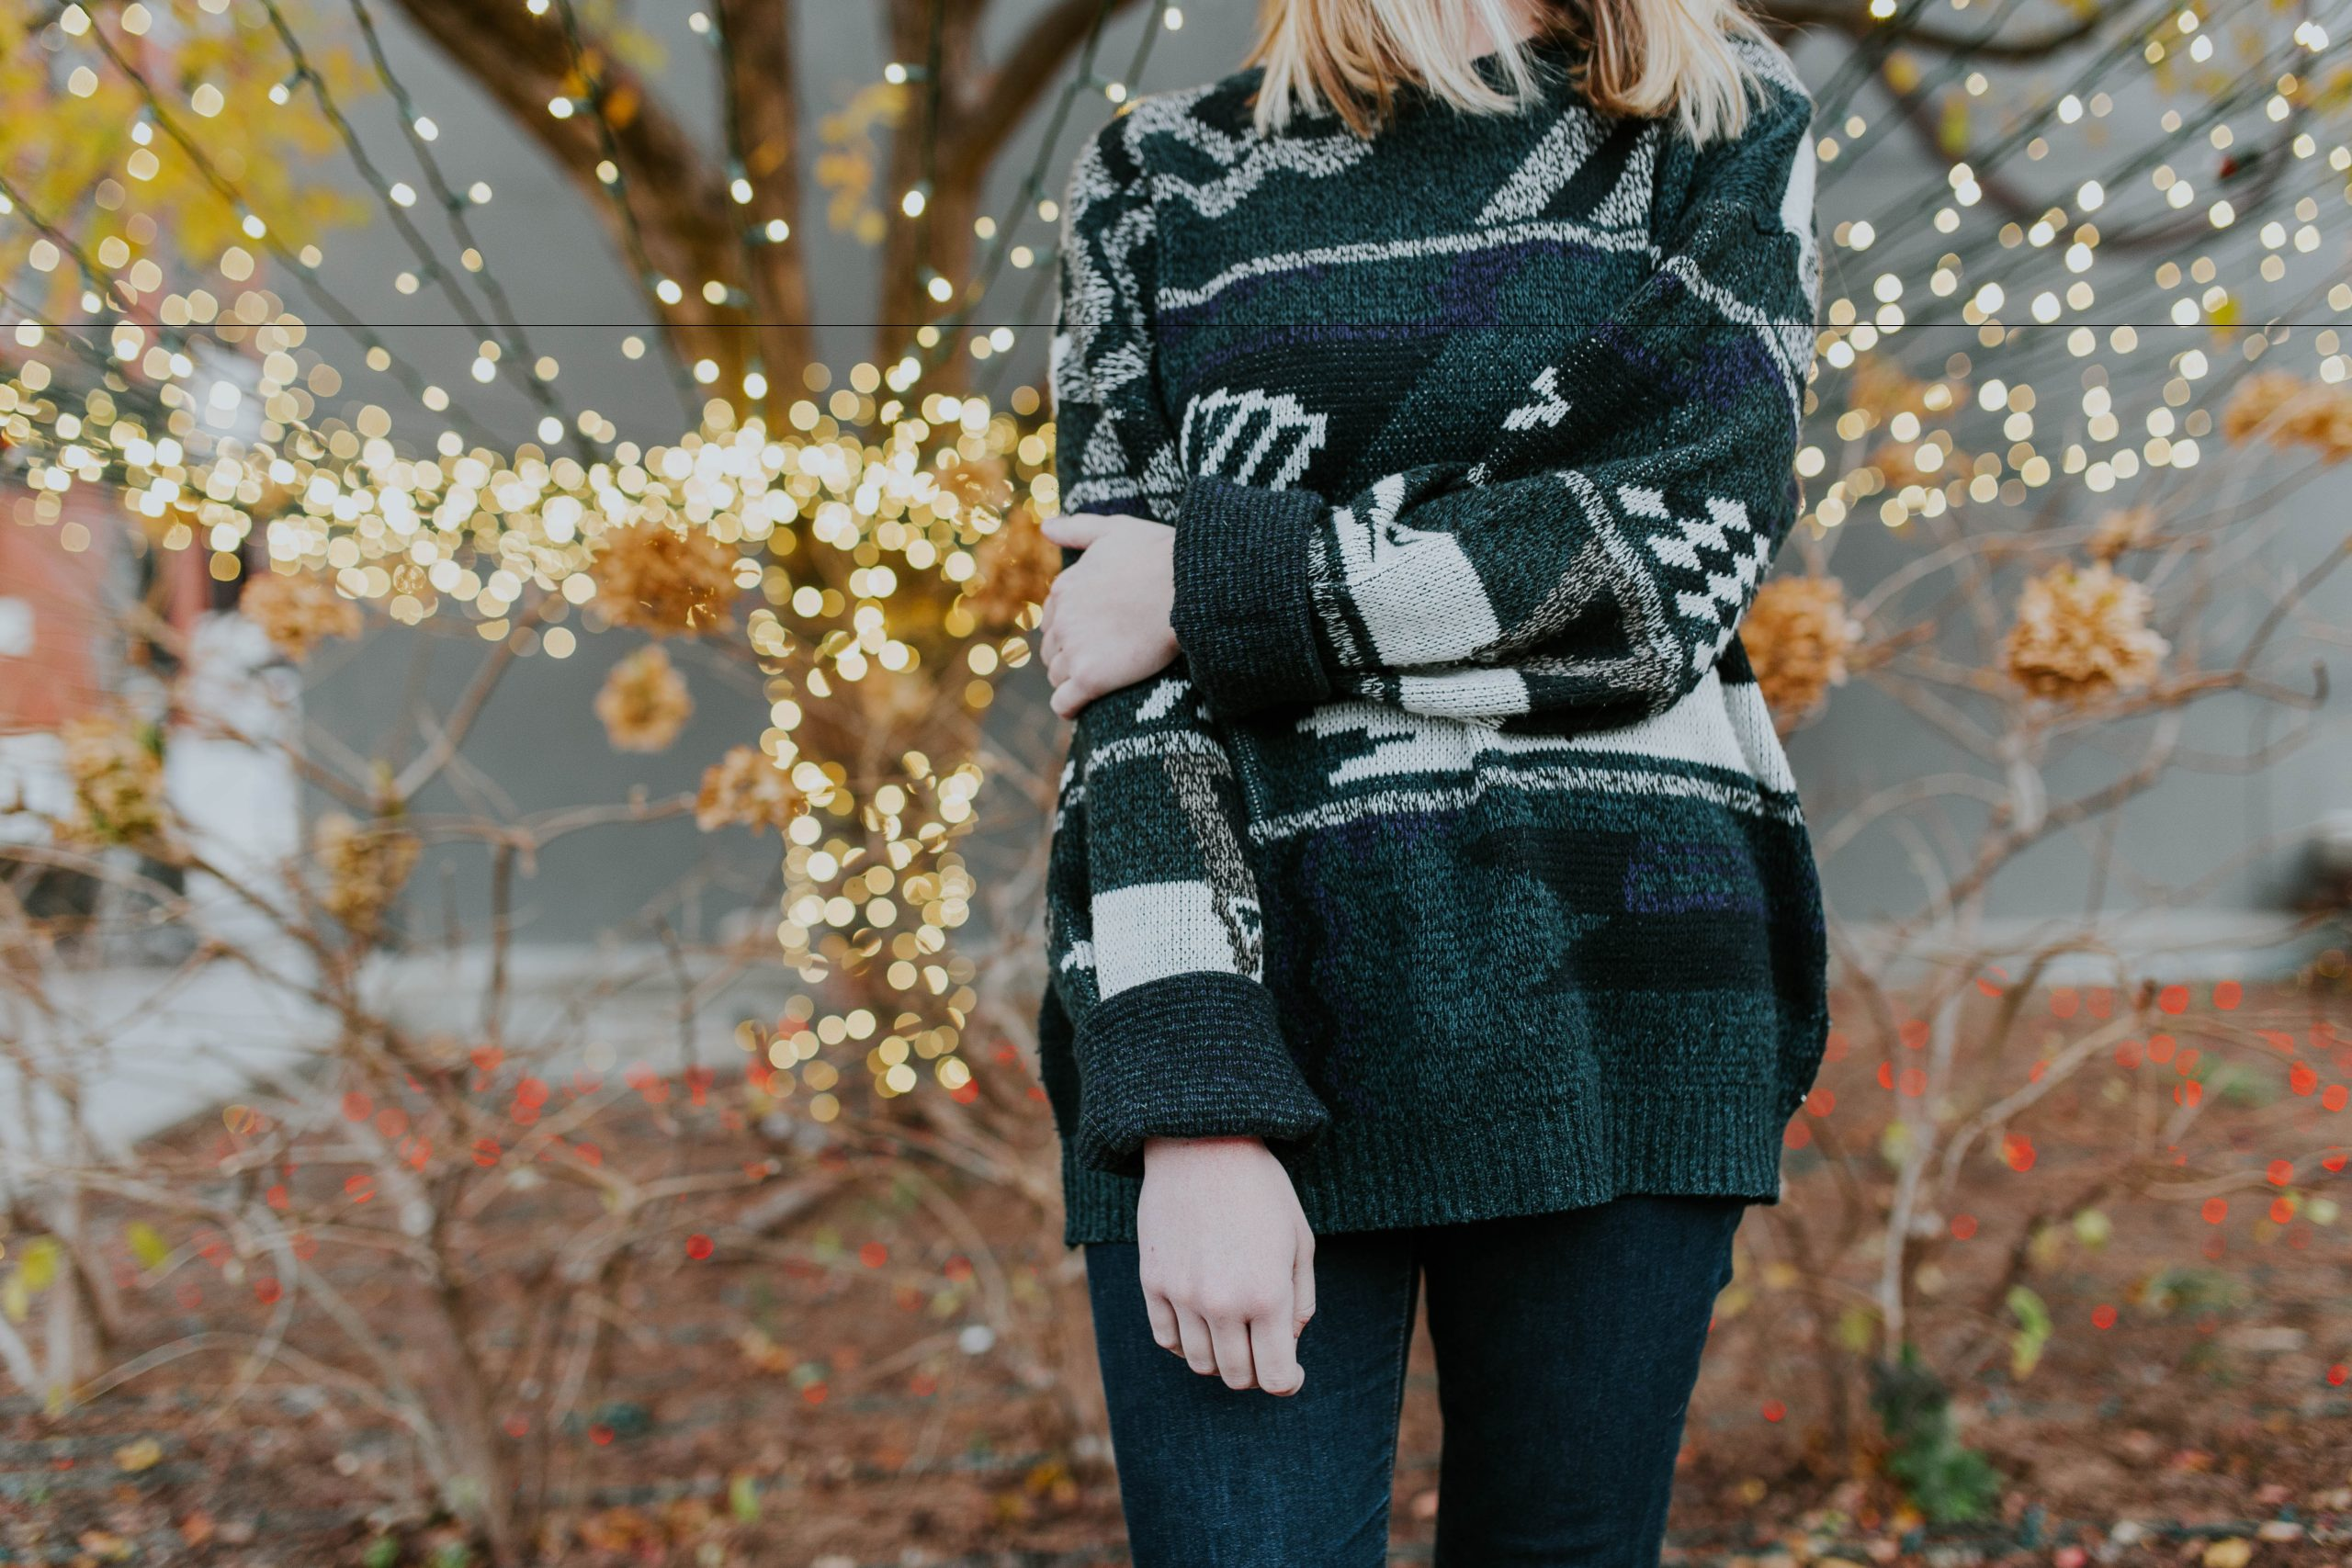 How to Look Stylish on a Budget During the Holiday Season